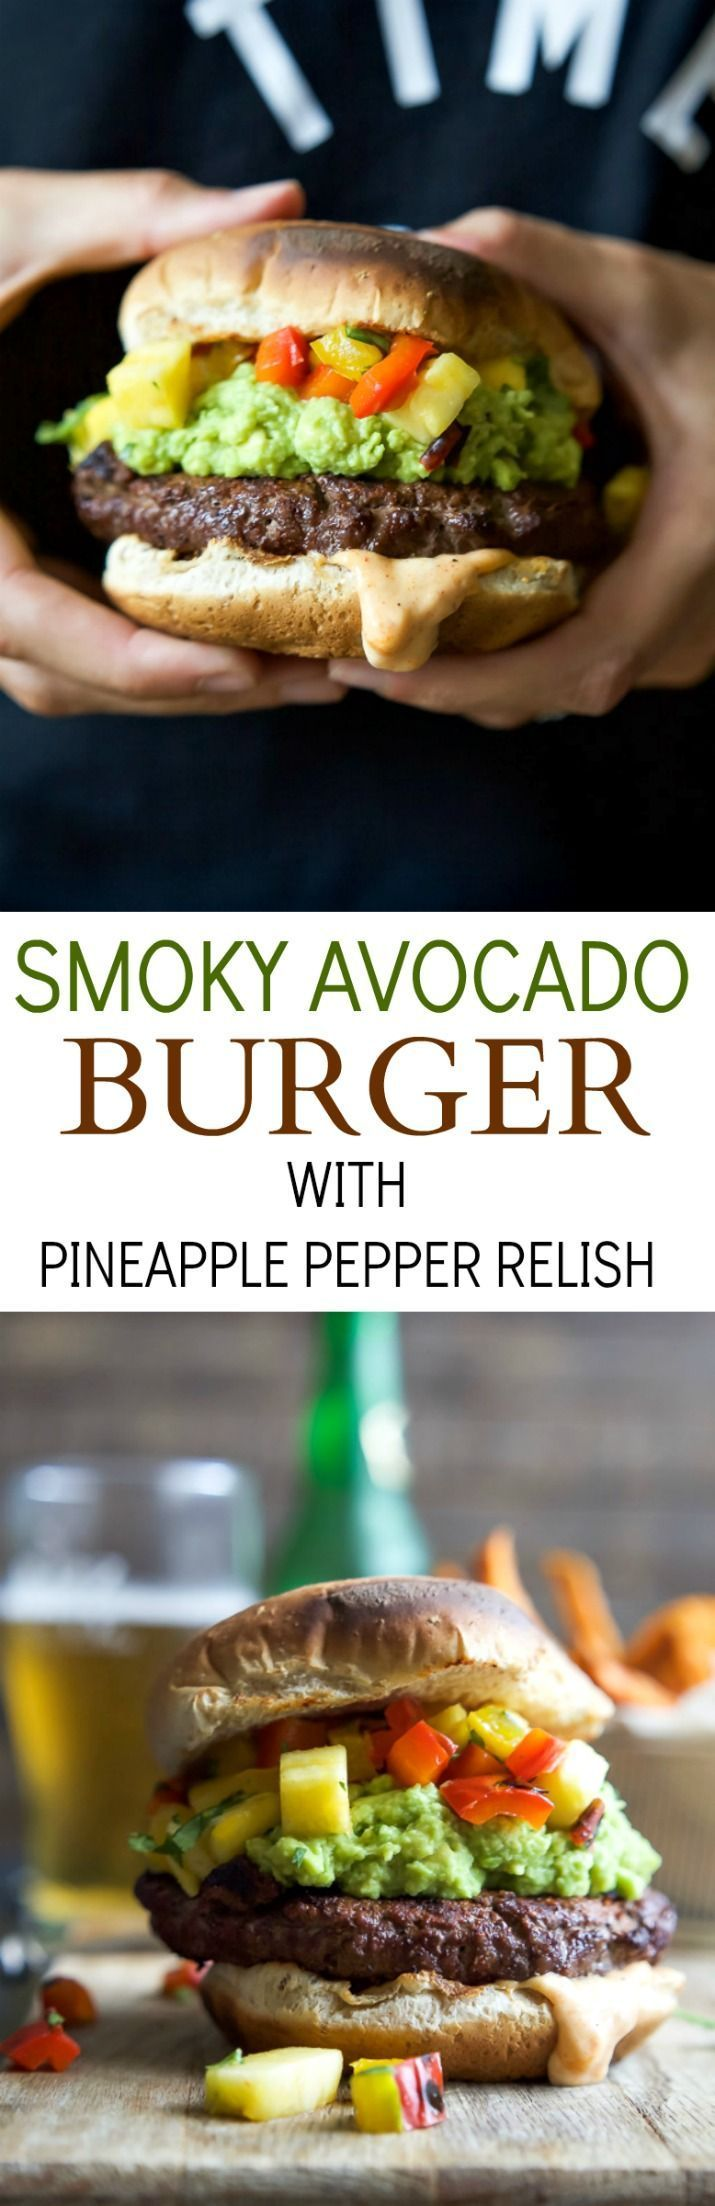 Smoky Avocado Burgers topped with a Pineapple Pepper Relish! These burgers don't run short on flavor, they are juicy, tender, mouthwatering basically everything you want in a Burger + more!